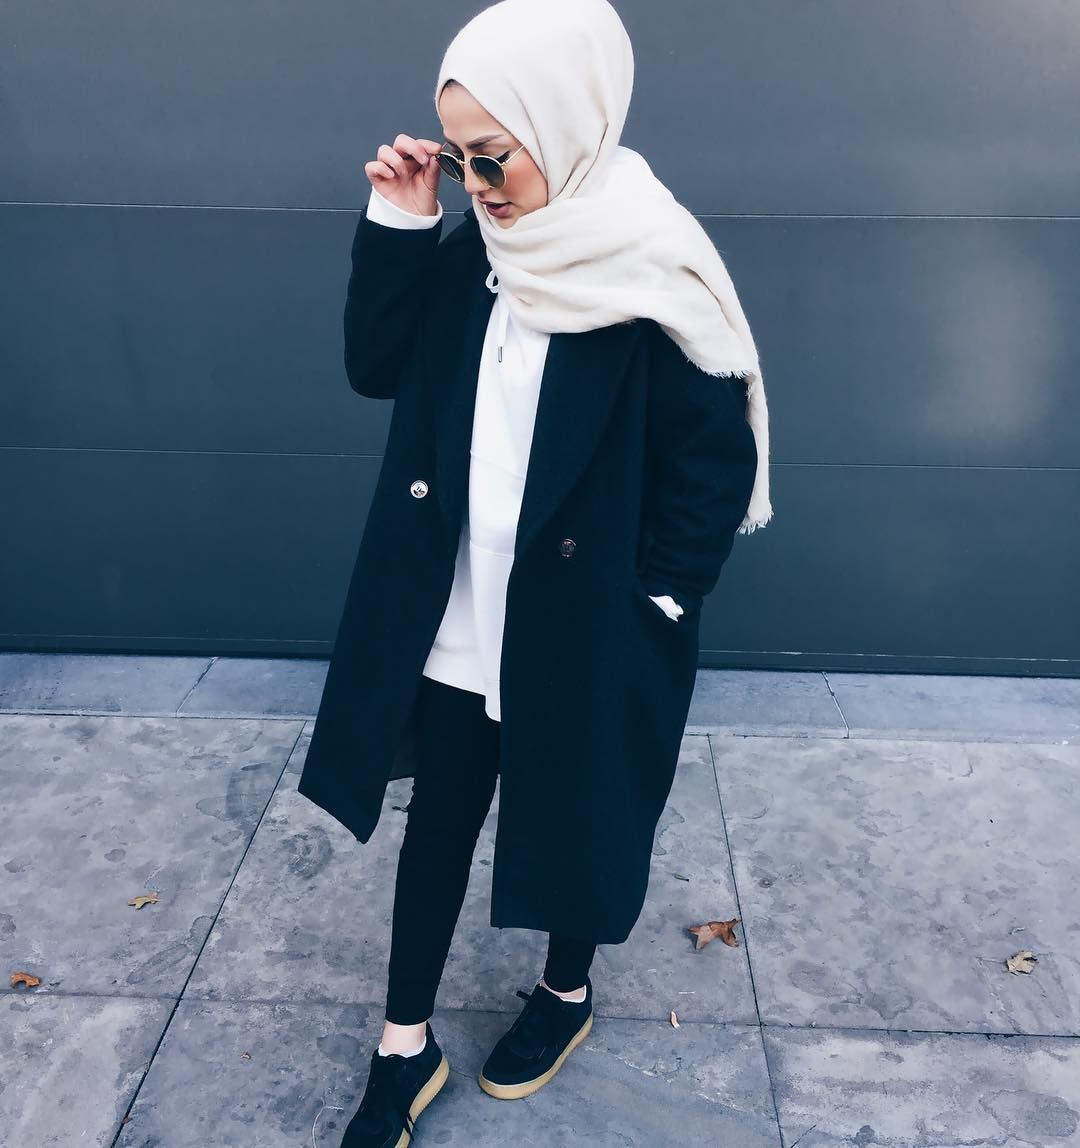 Muslim hipsters fashion, all black mipster style, hijab dupatta south asian  modern hippie